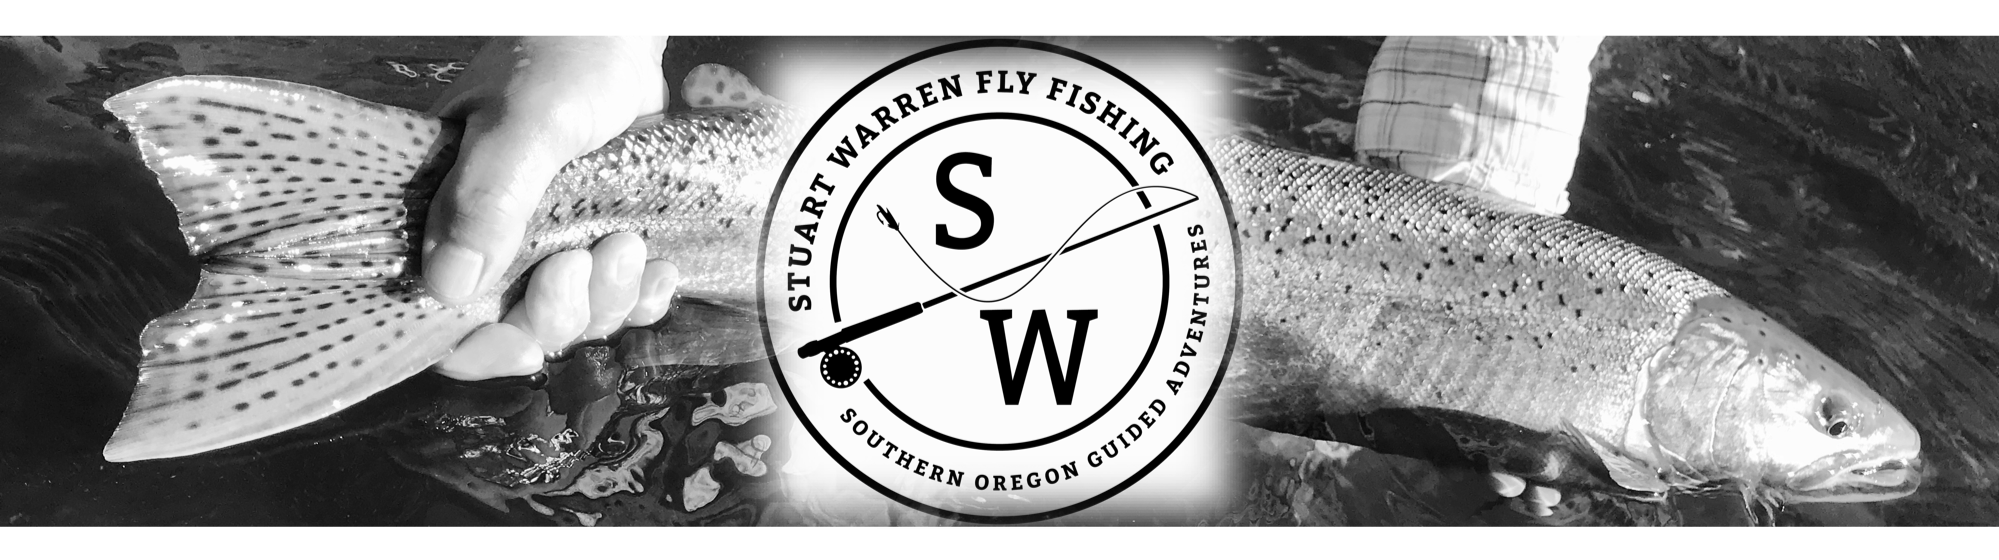 Stuart Warren Fly Fishing